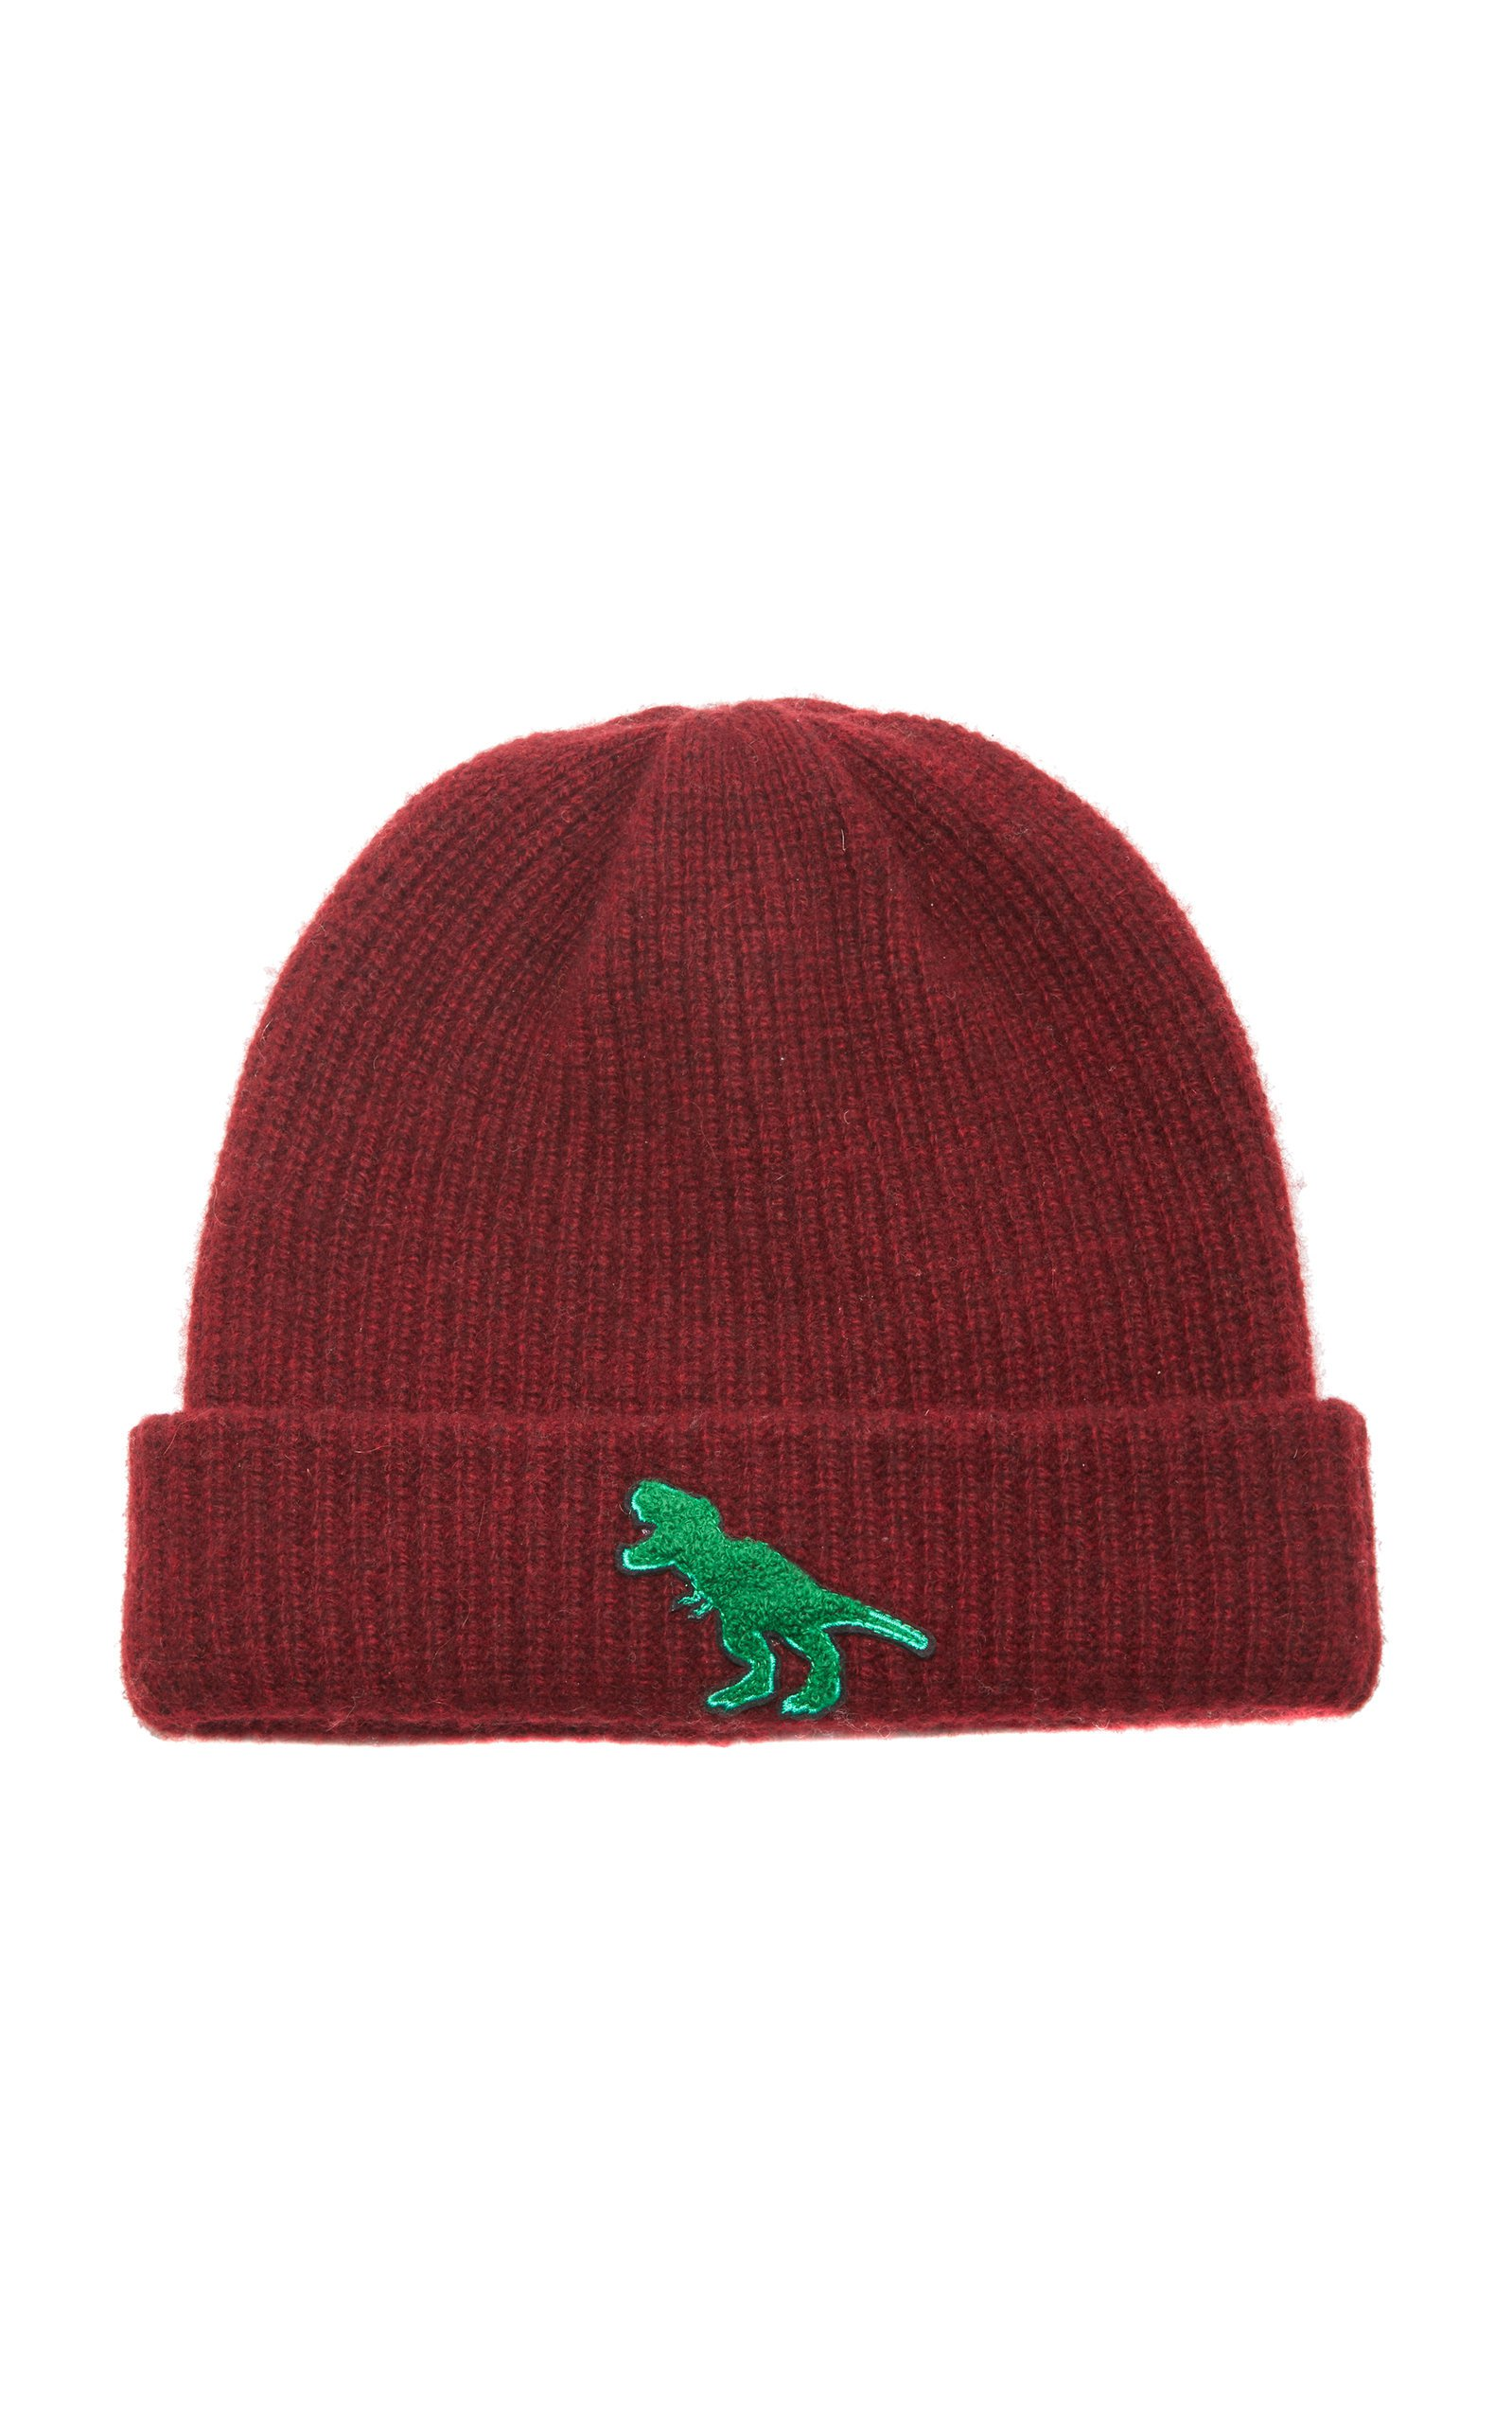 Watchman Embroidered Ribbed Cashmere Beanie by The Elder Statesman | Moda Operandi